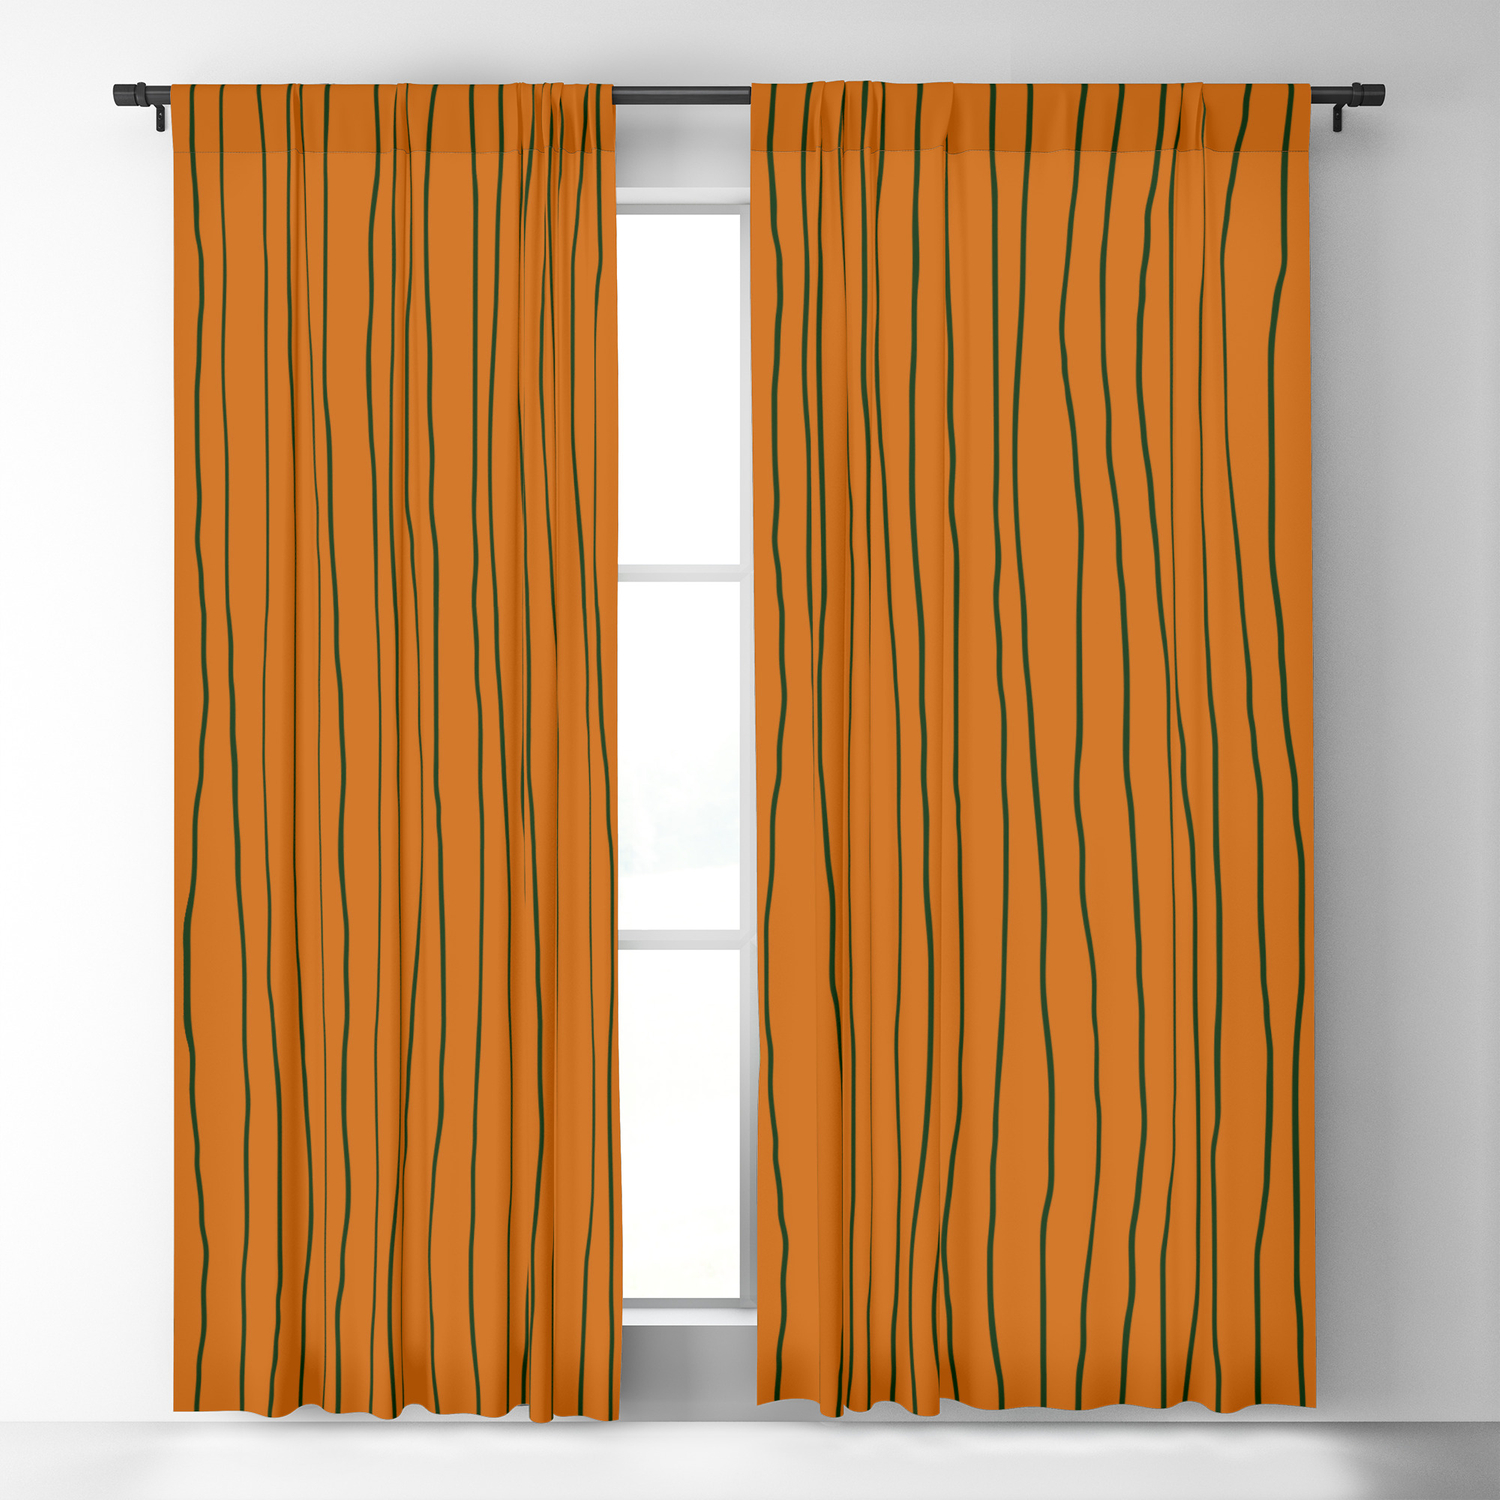 Hand Drawn Lines Vertical Combination Orange / Black Blackout Curtain by  missstriped